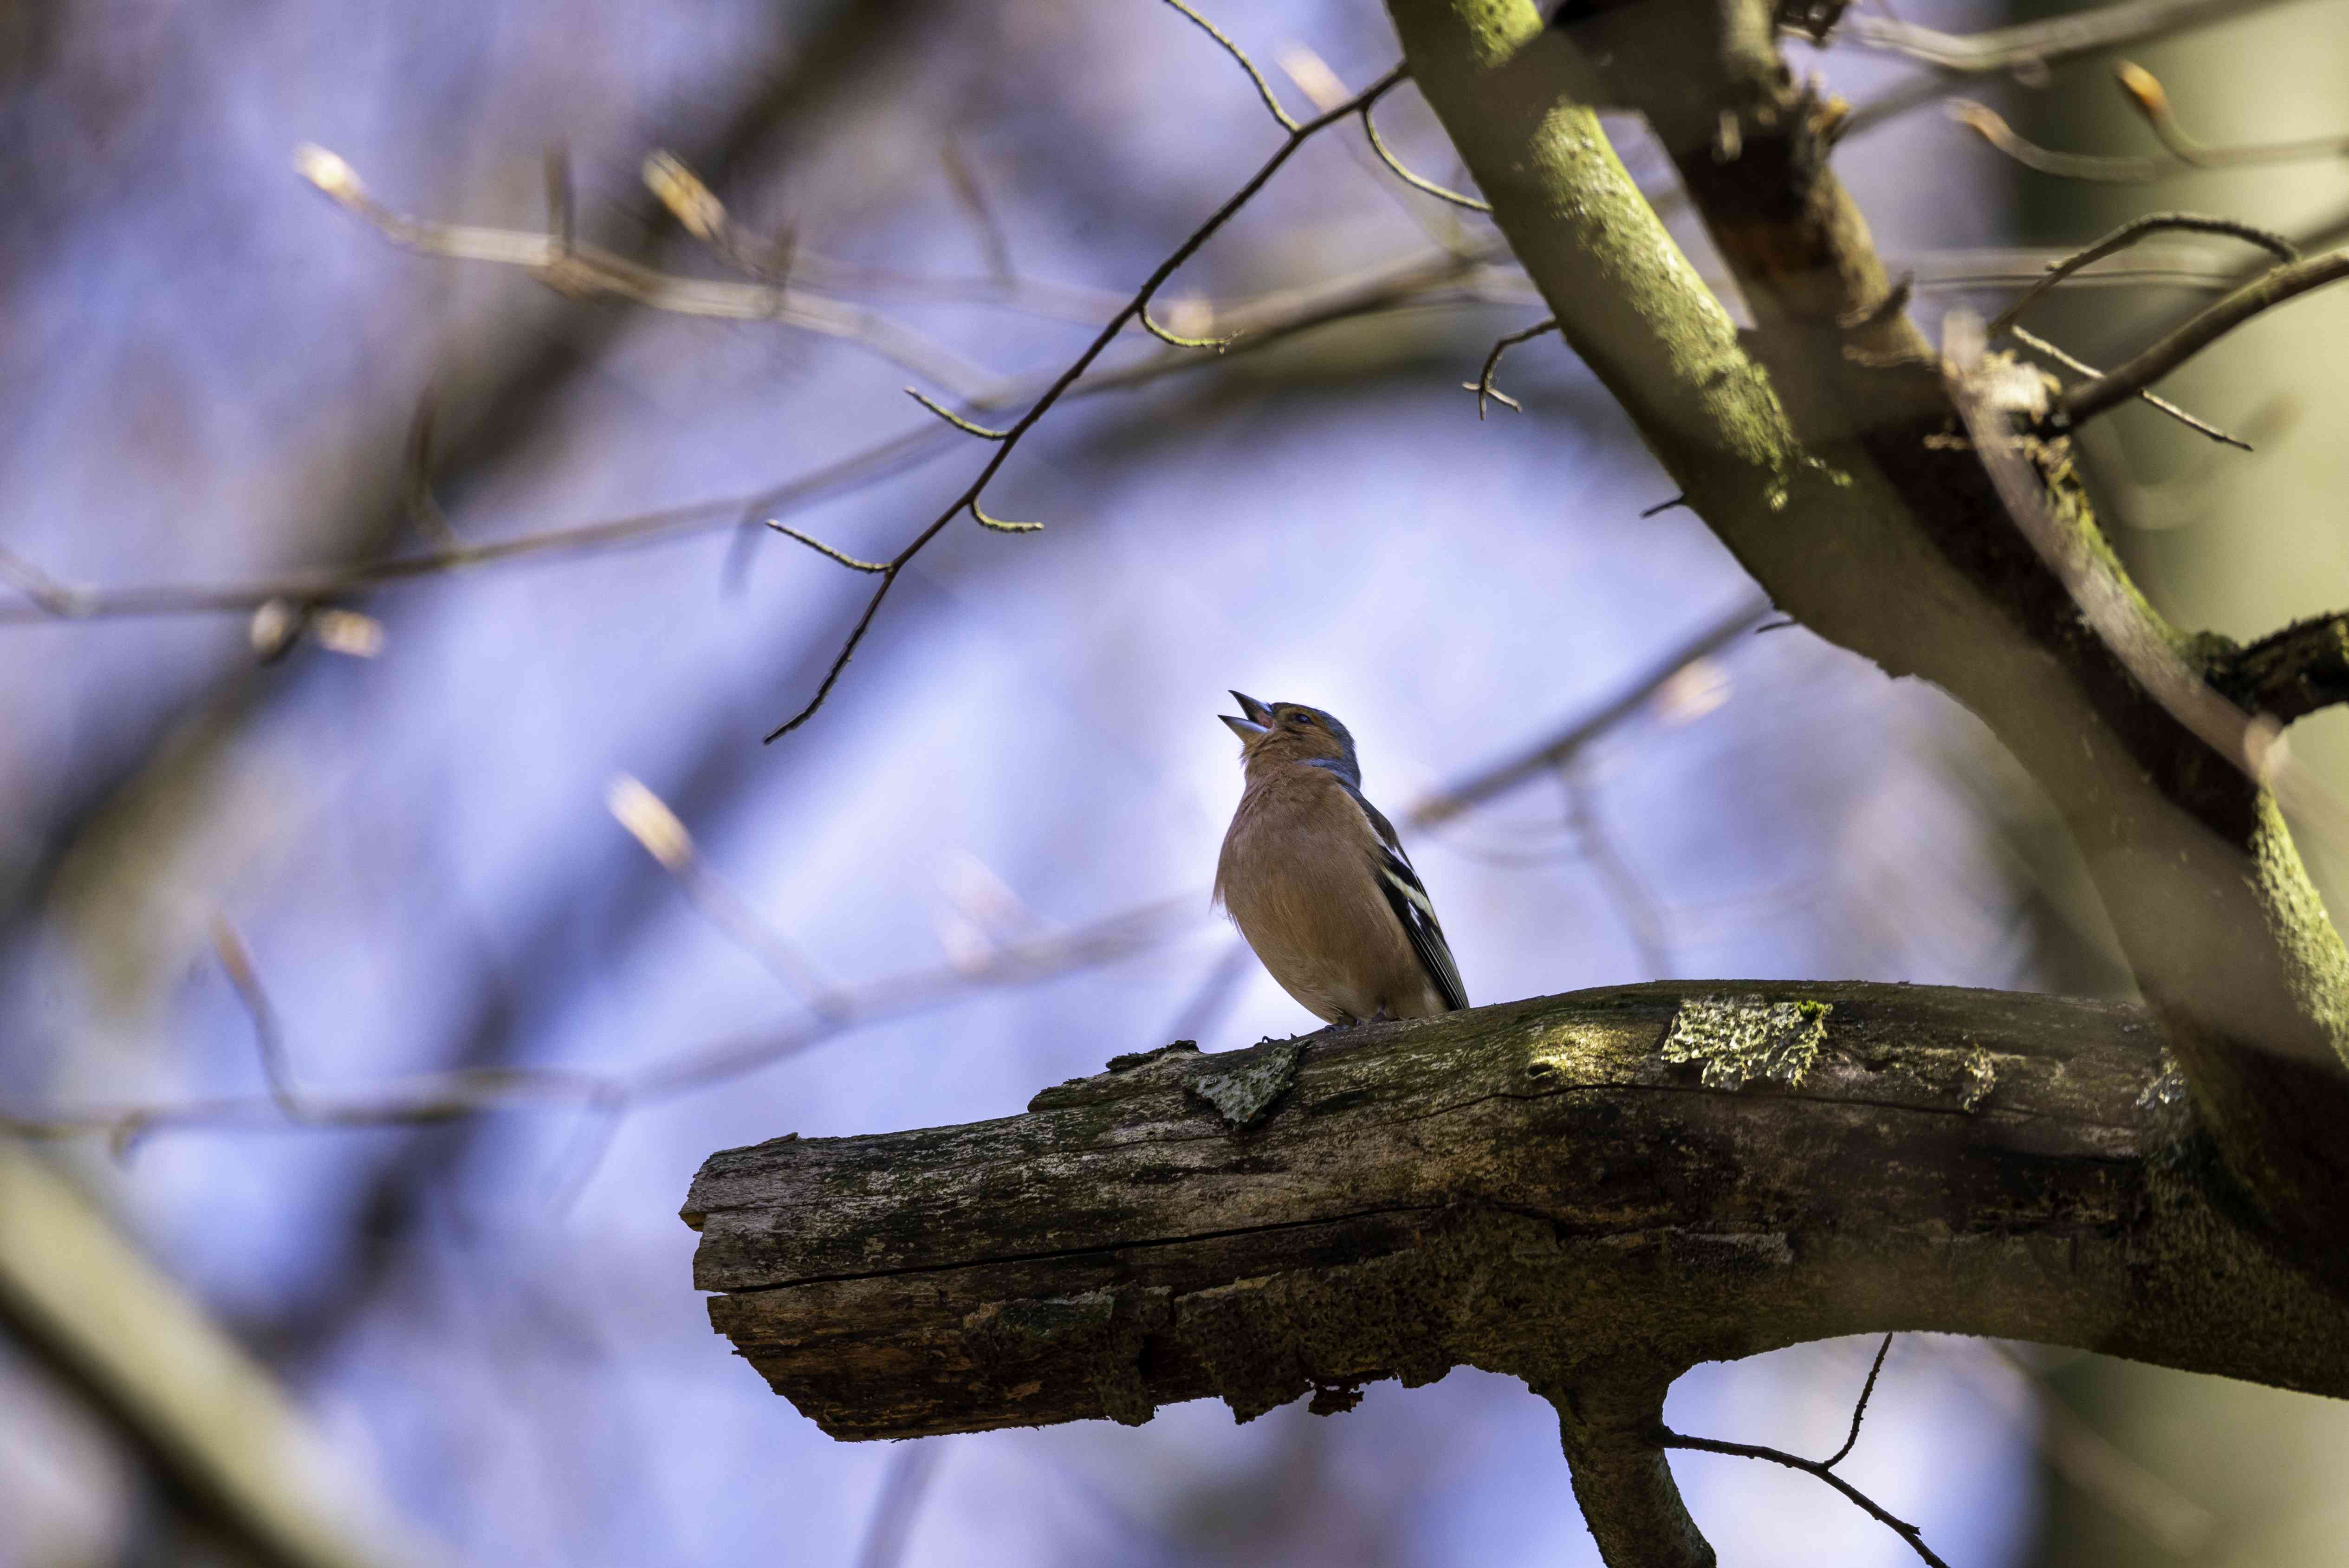 portrait of a small european chaffinch sitting and singing on a tree